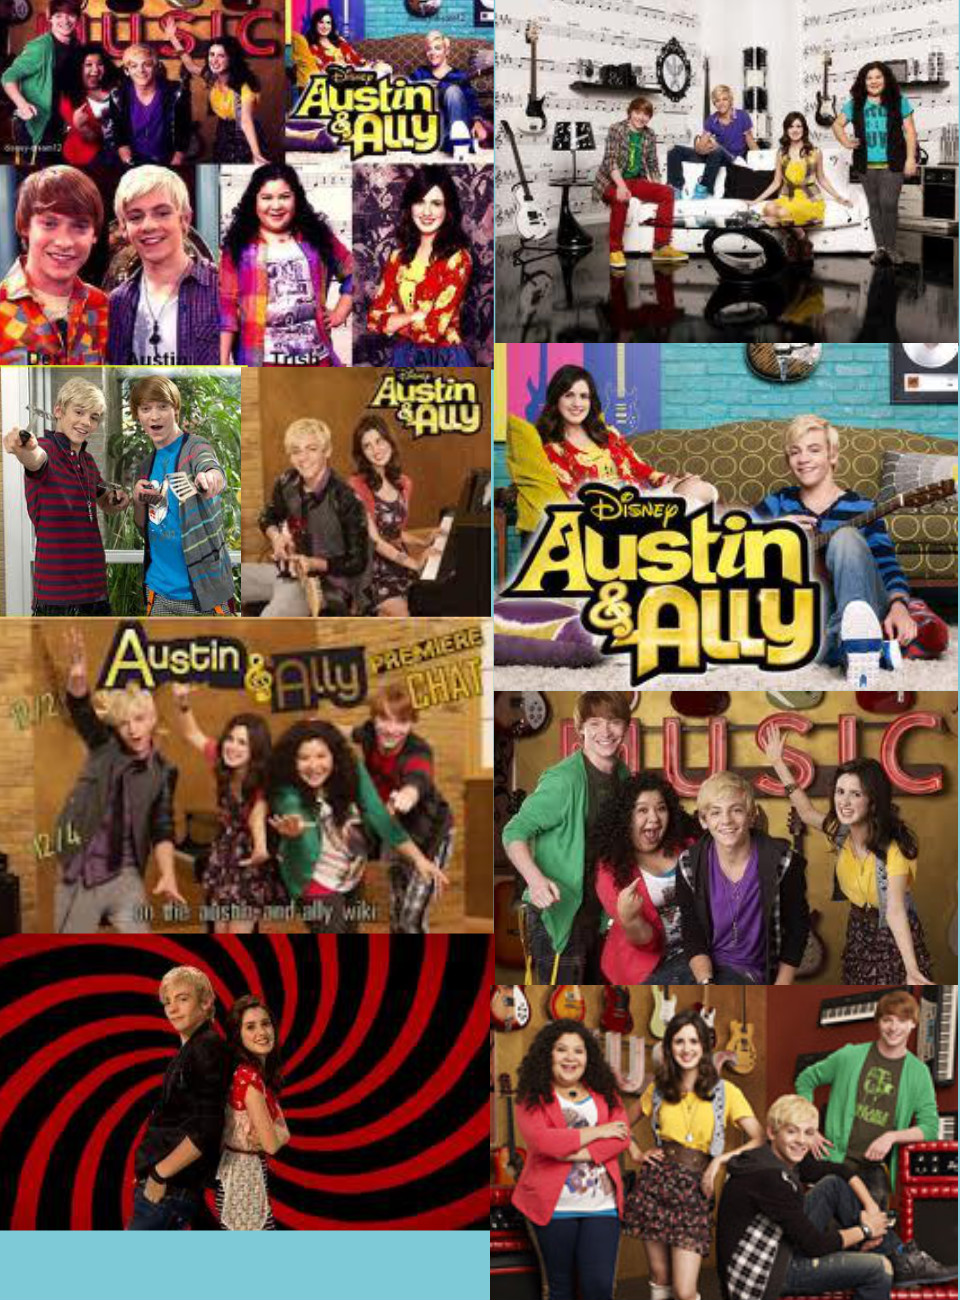 Is Austin dating ally on Austin and ally